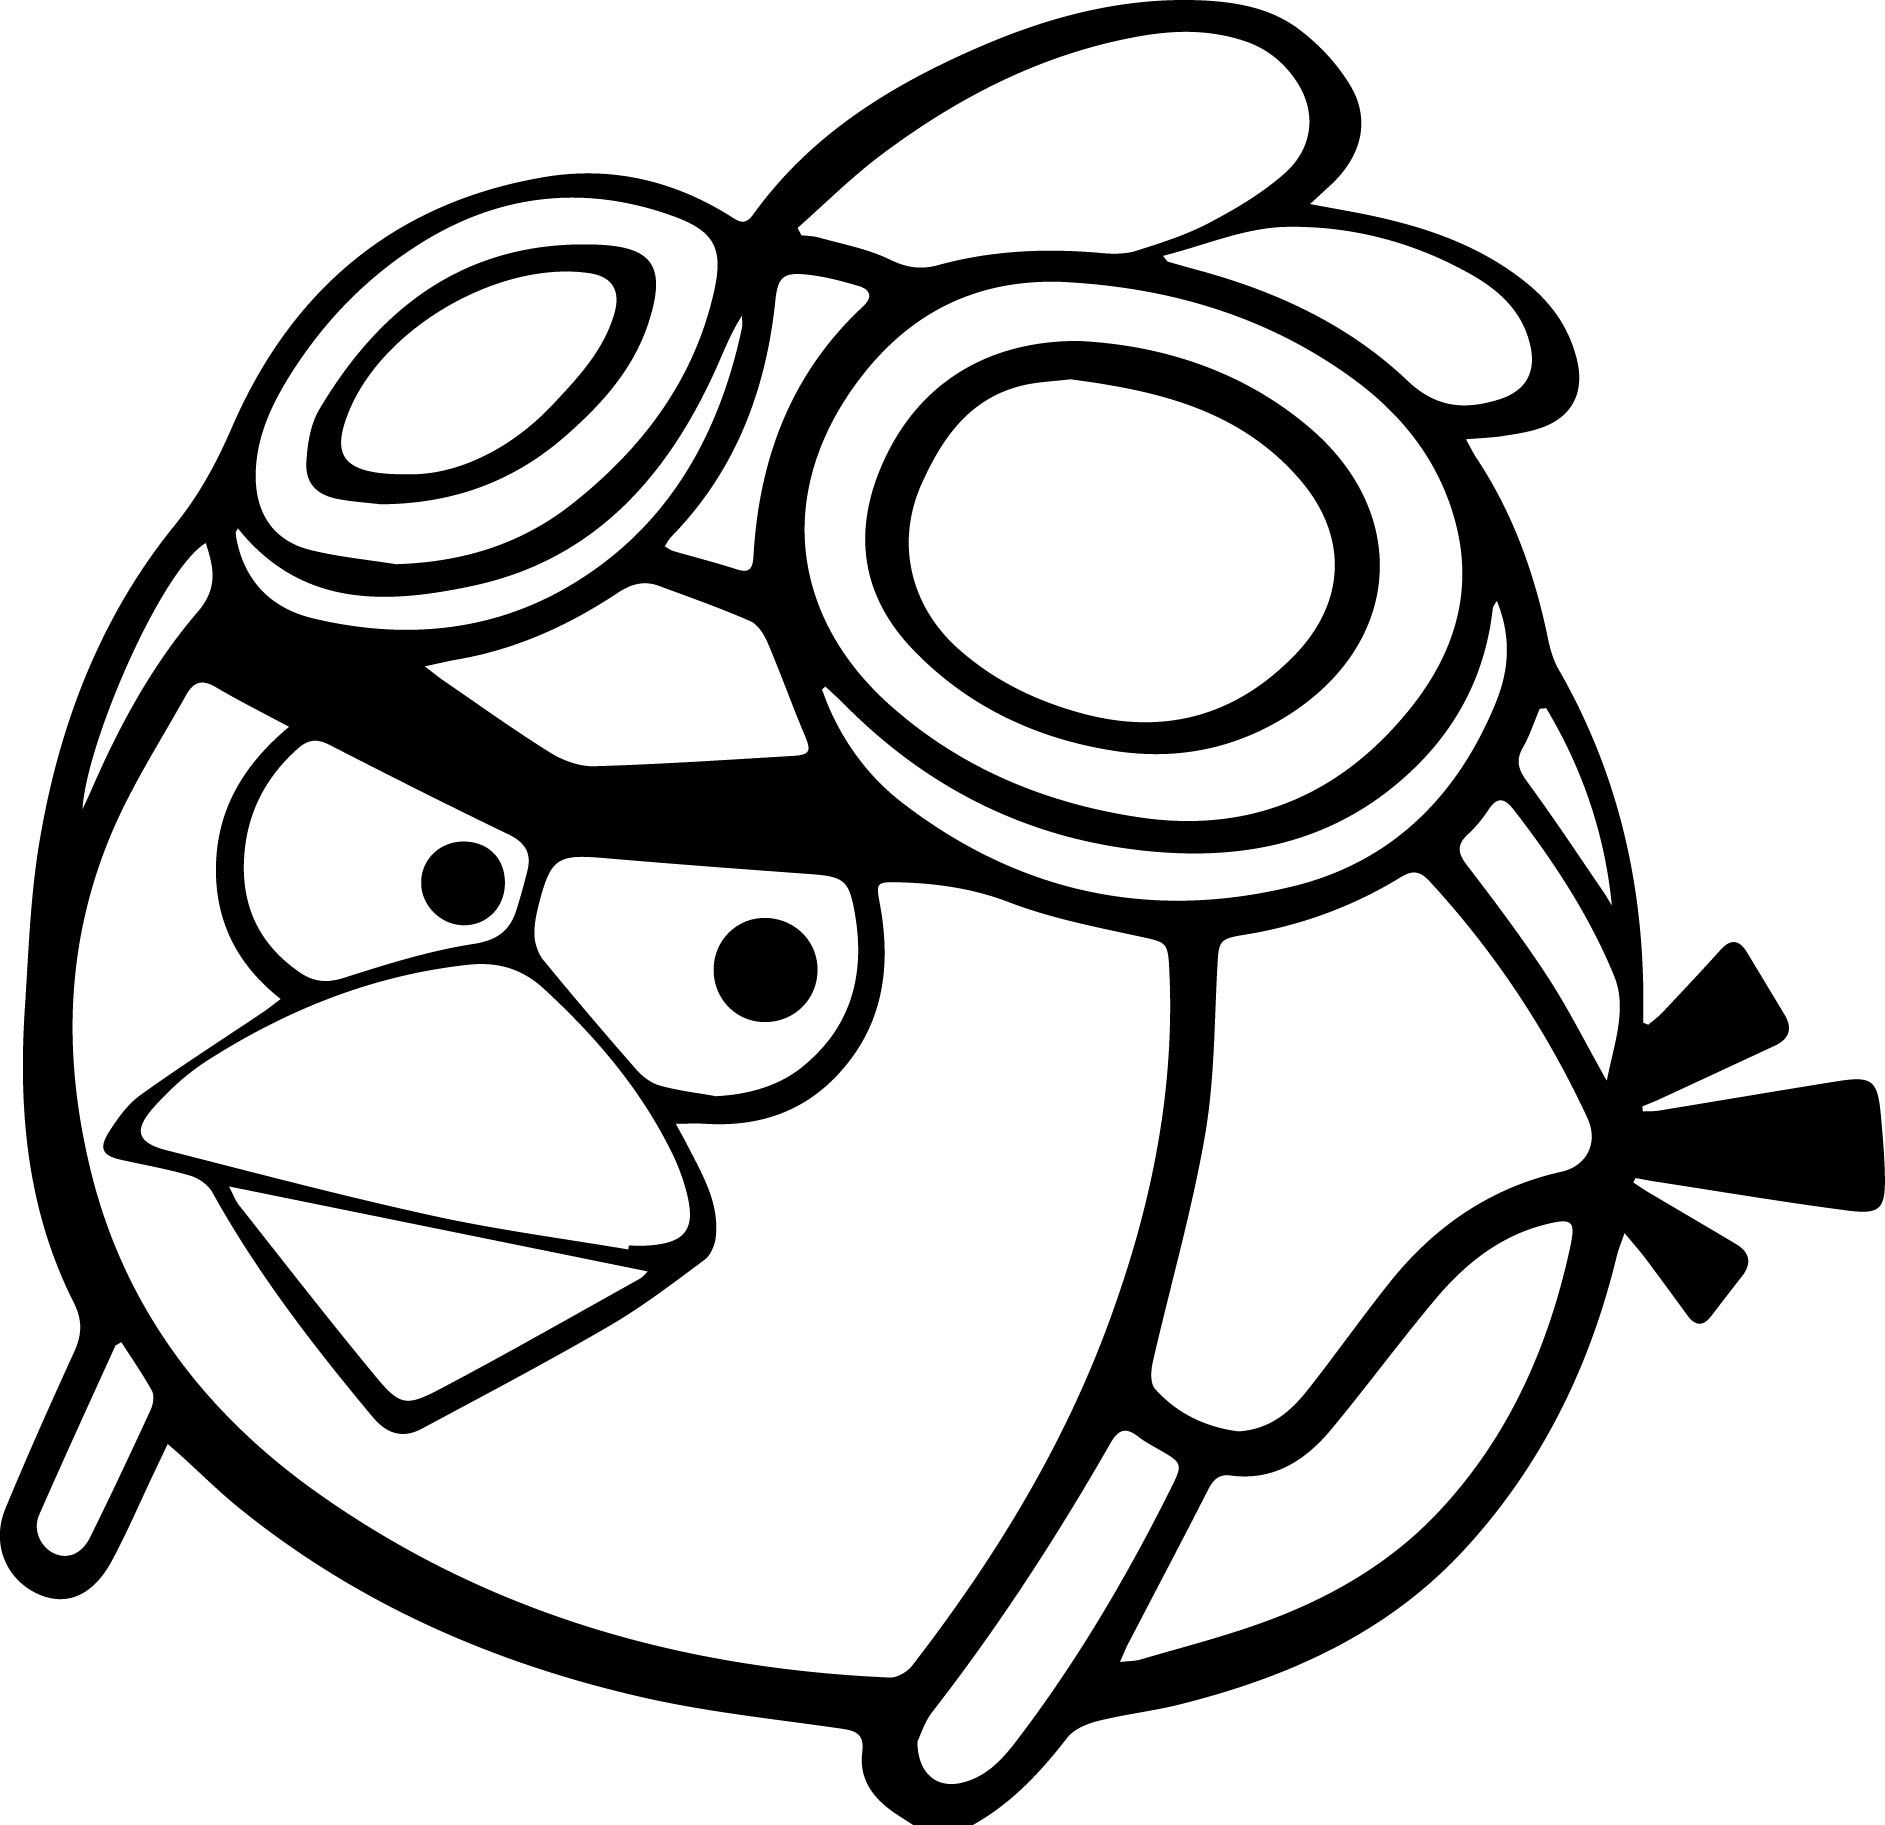 angry birds pictures to color and print printable angry birds movie 2 coloring pages for kids angry to color birds pictures print and